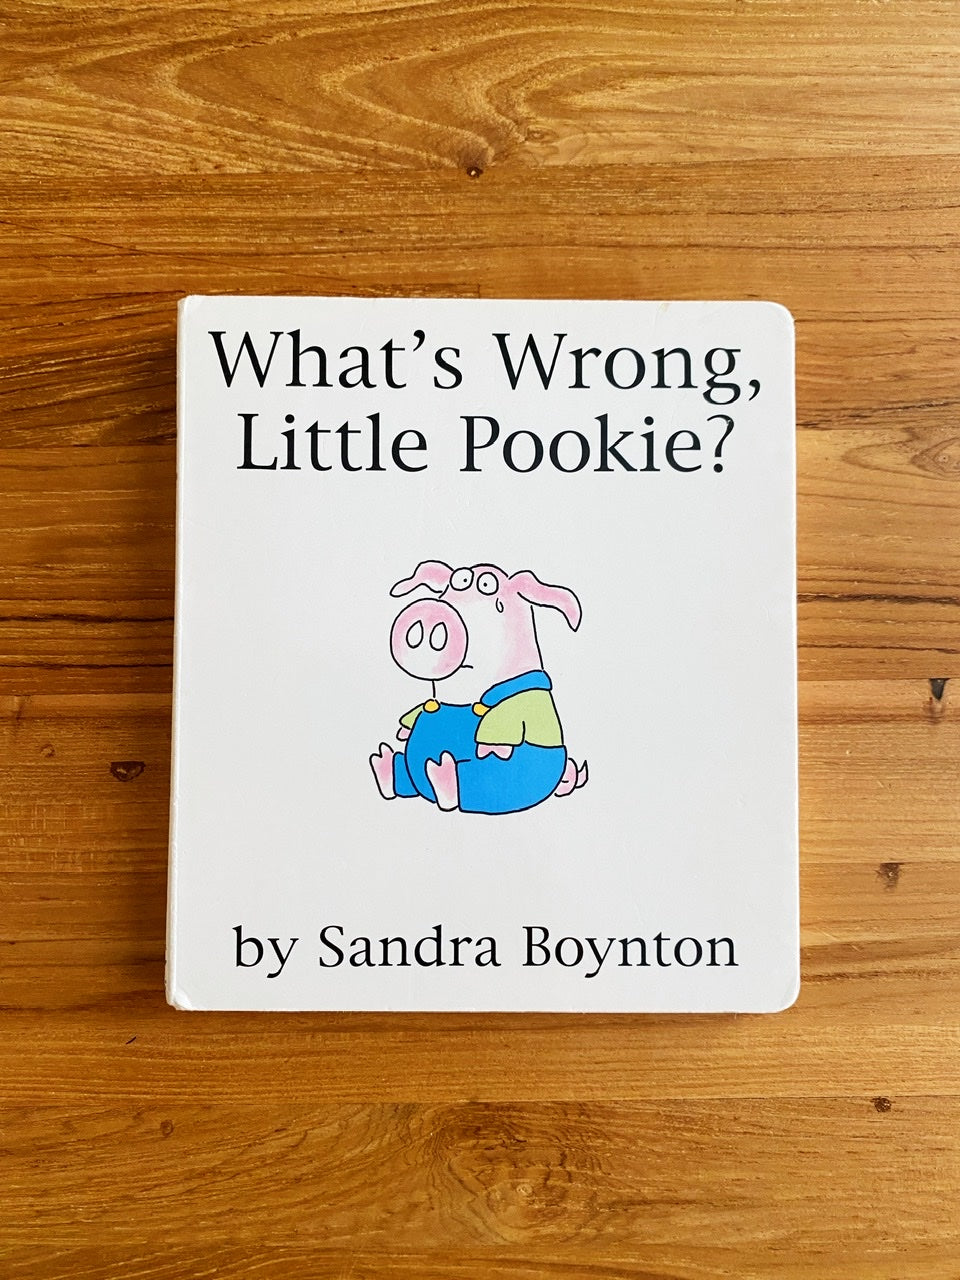 What's Wrong Little Pookie? by Sandra Boynton